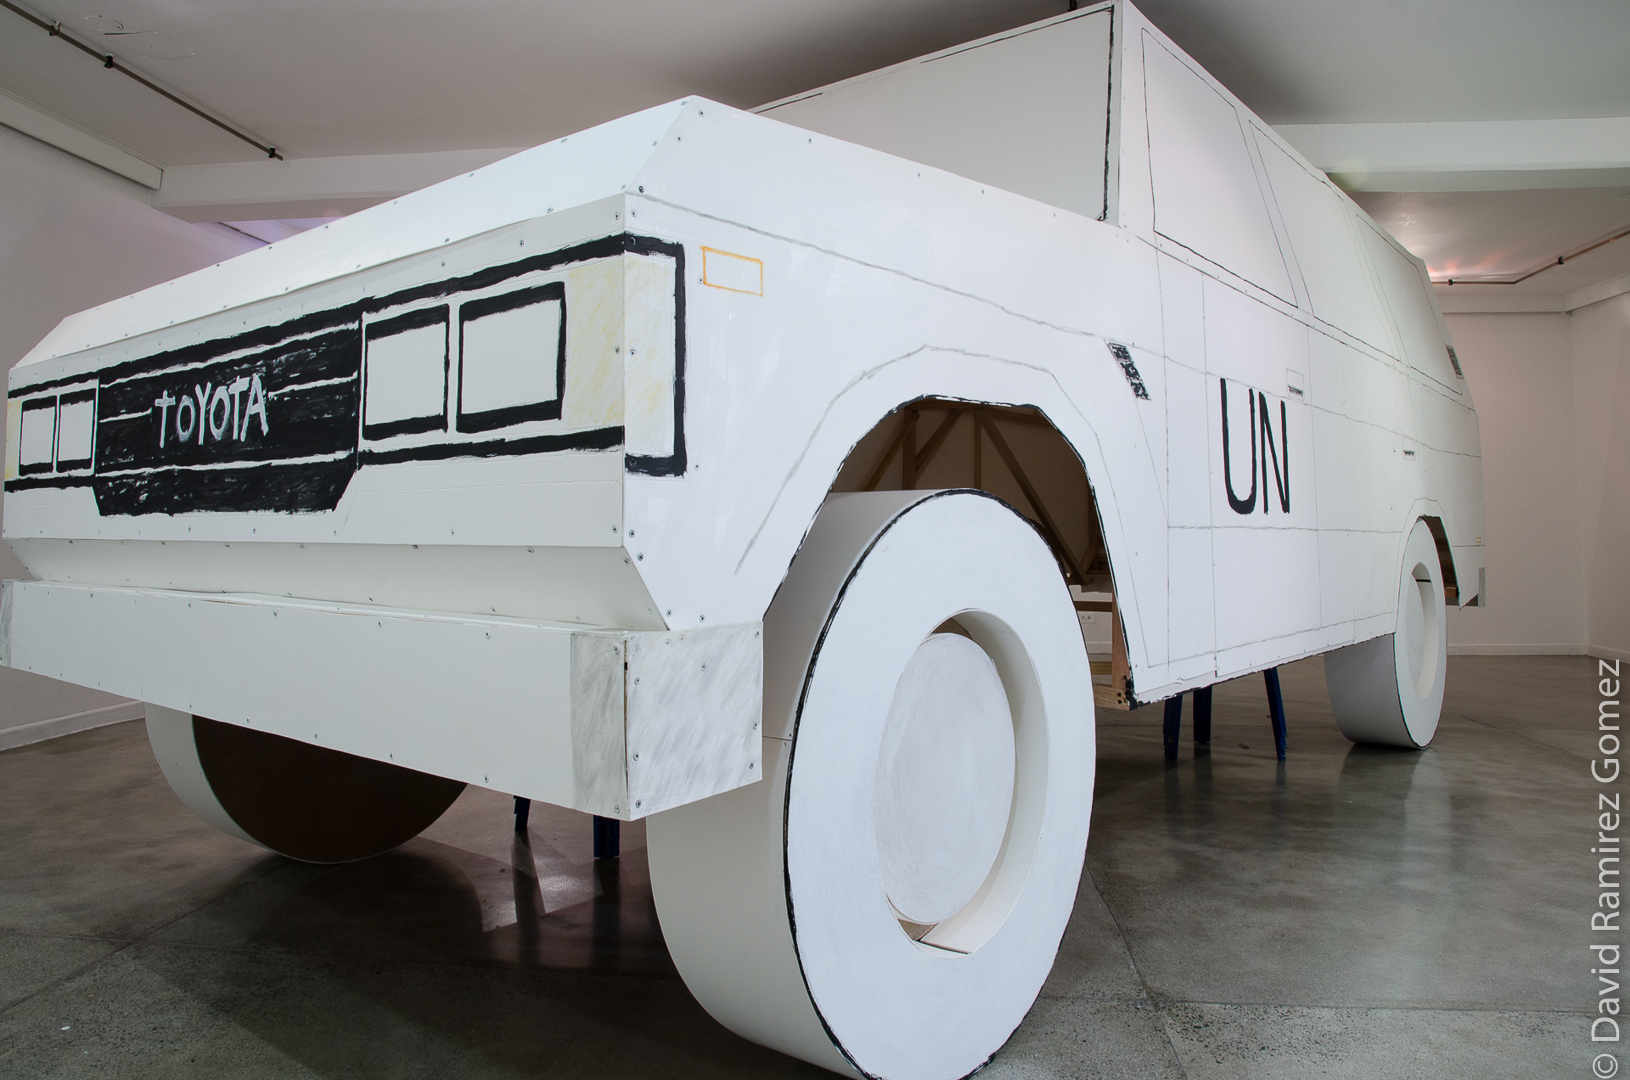 united nations car web.jpg